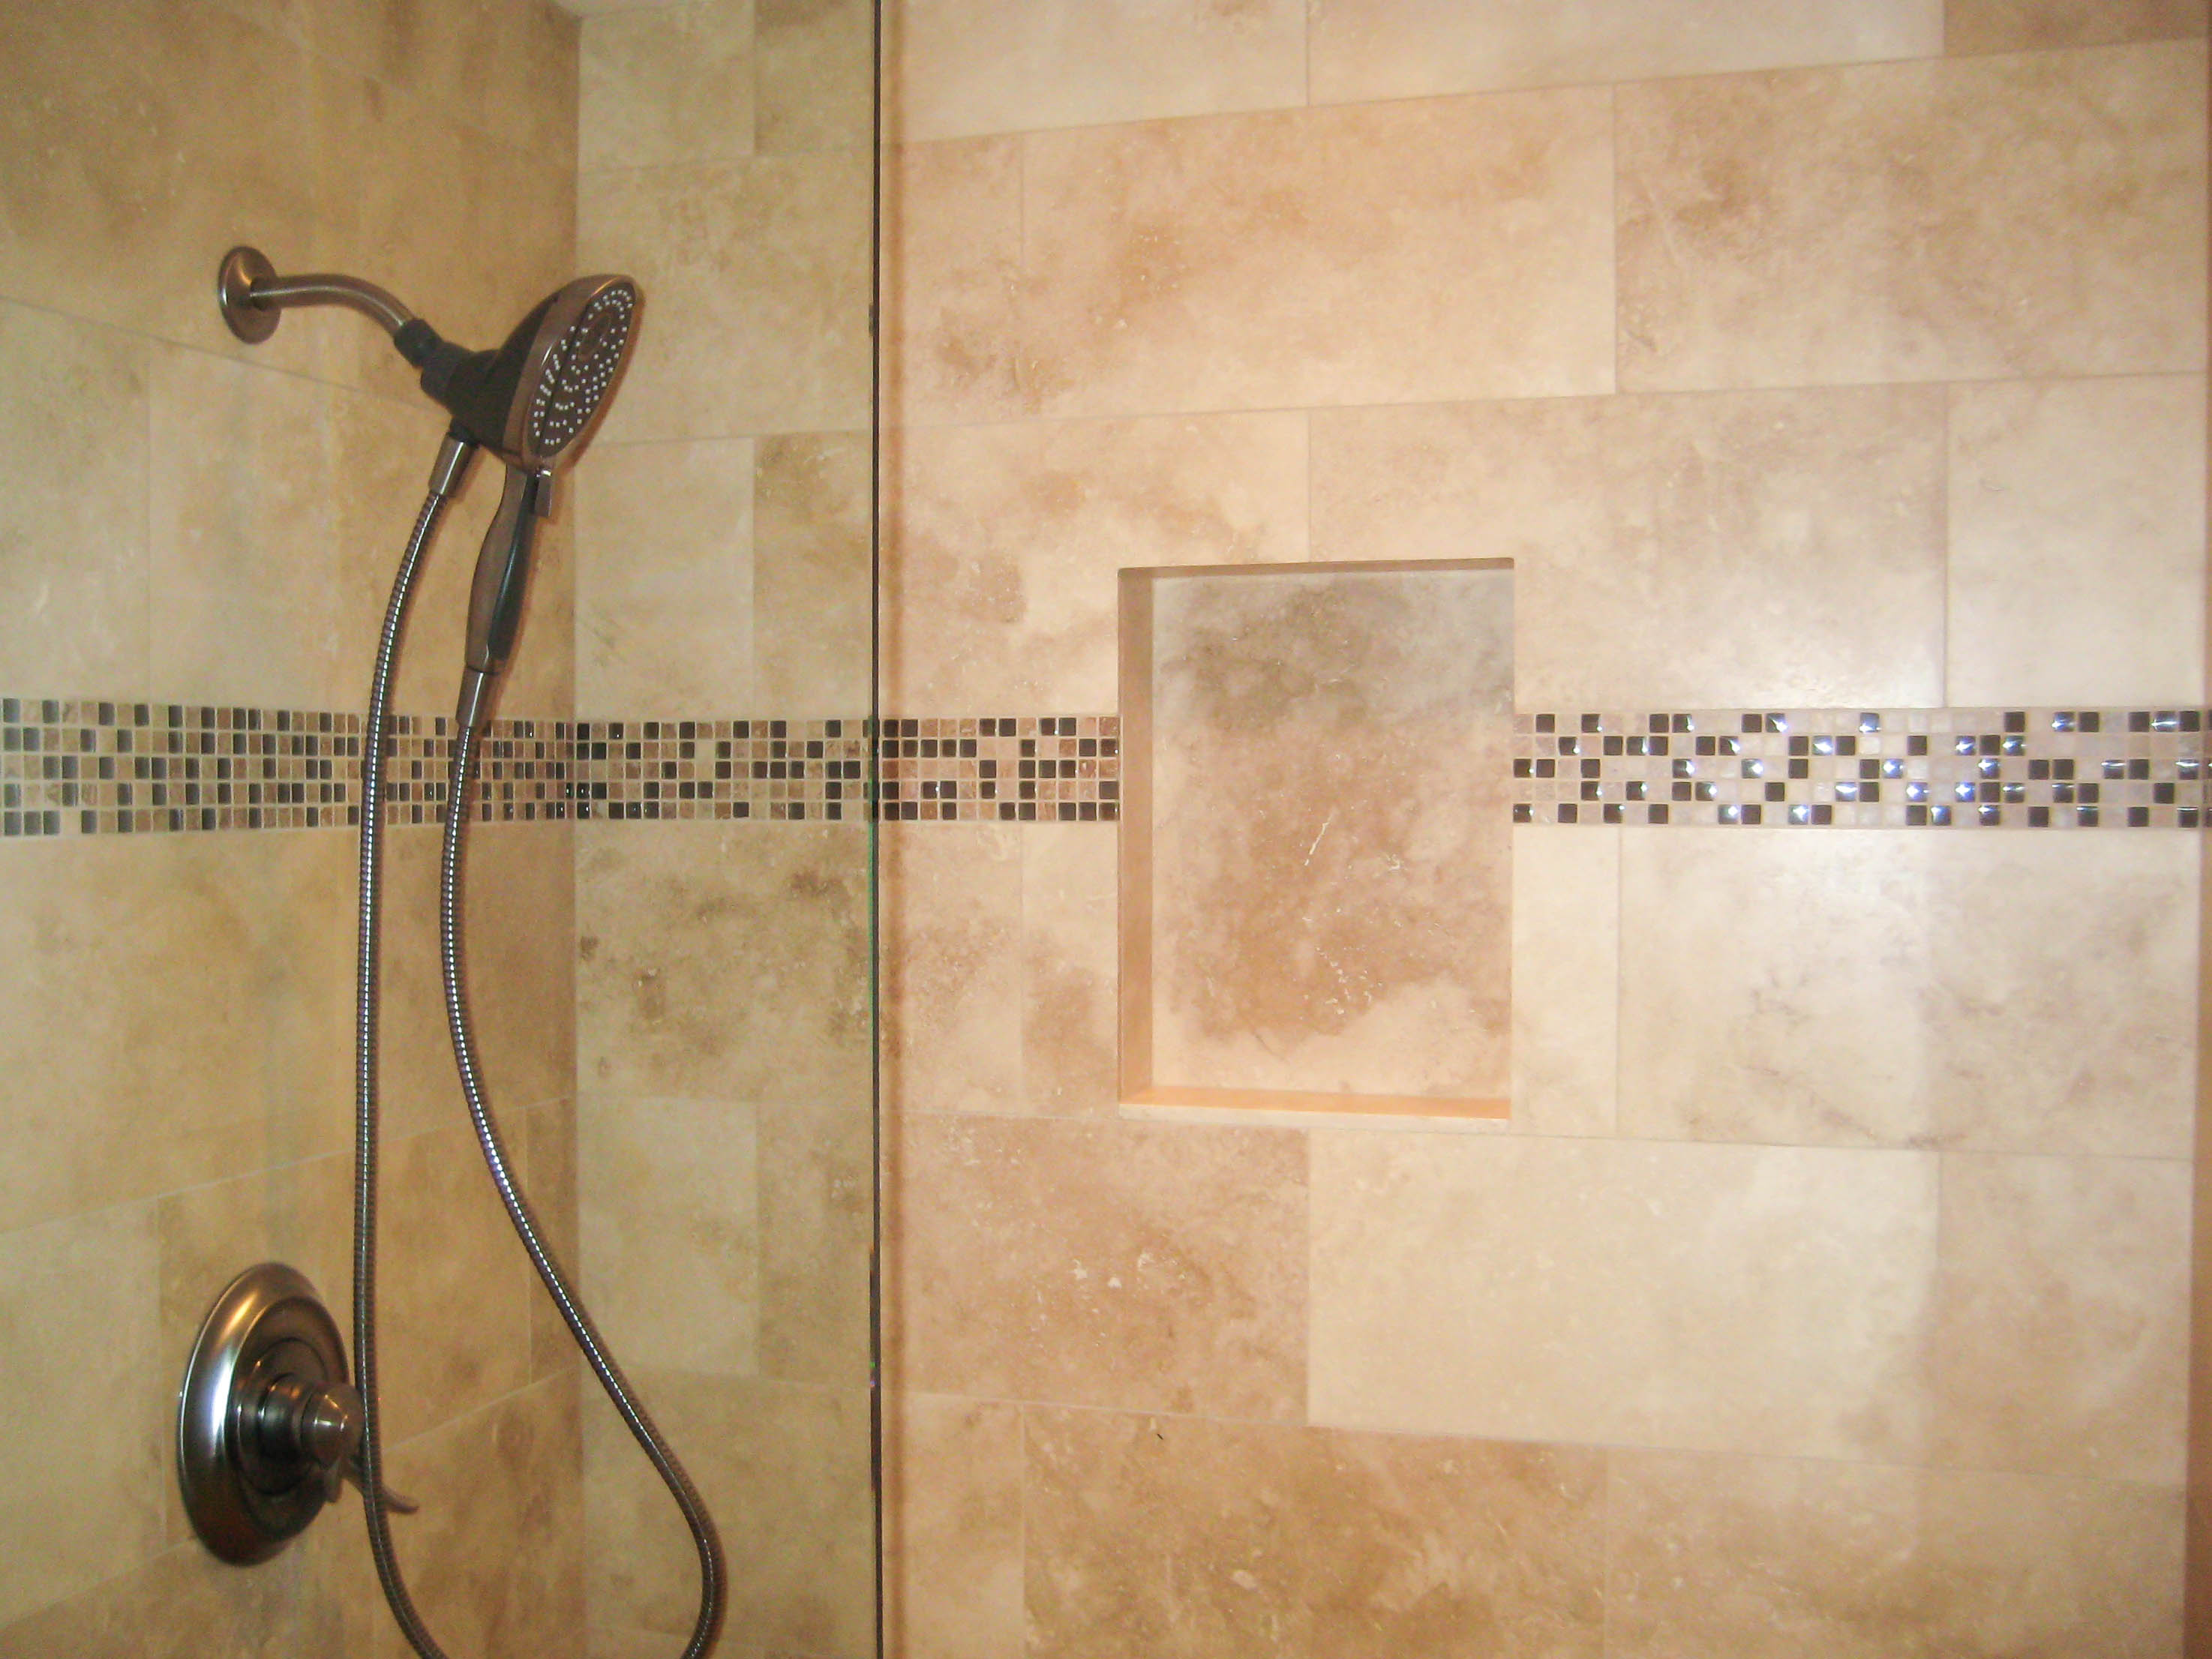 Bathroom Showers bathroom showers photos - seattle tile contractor | irc tile services